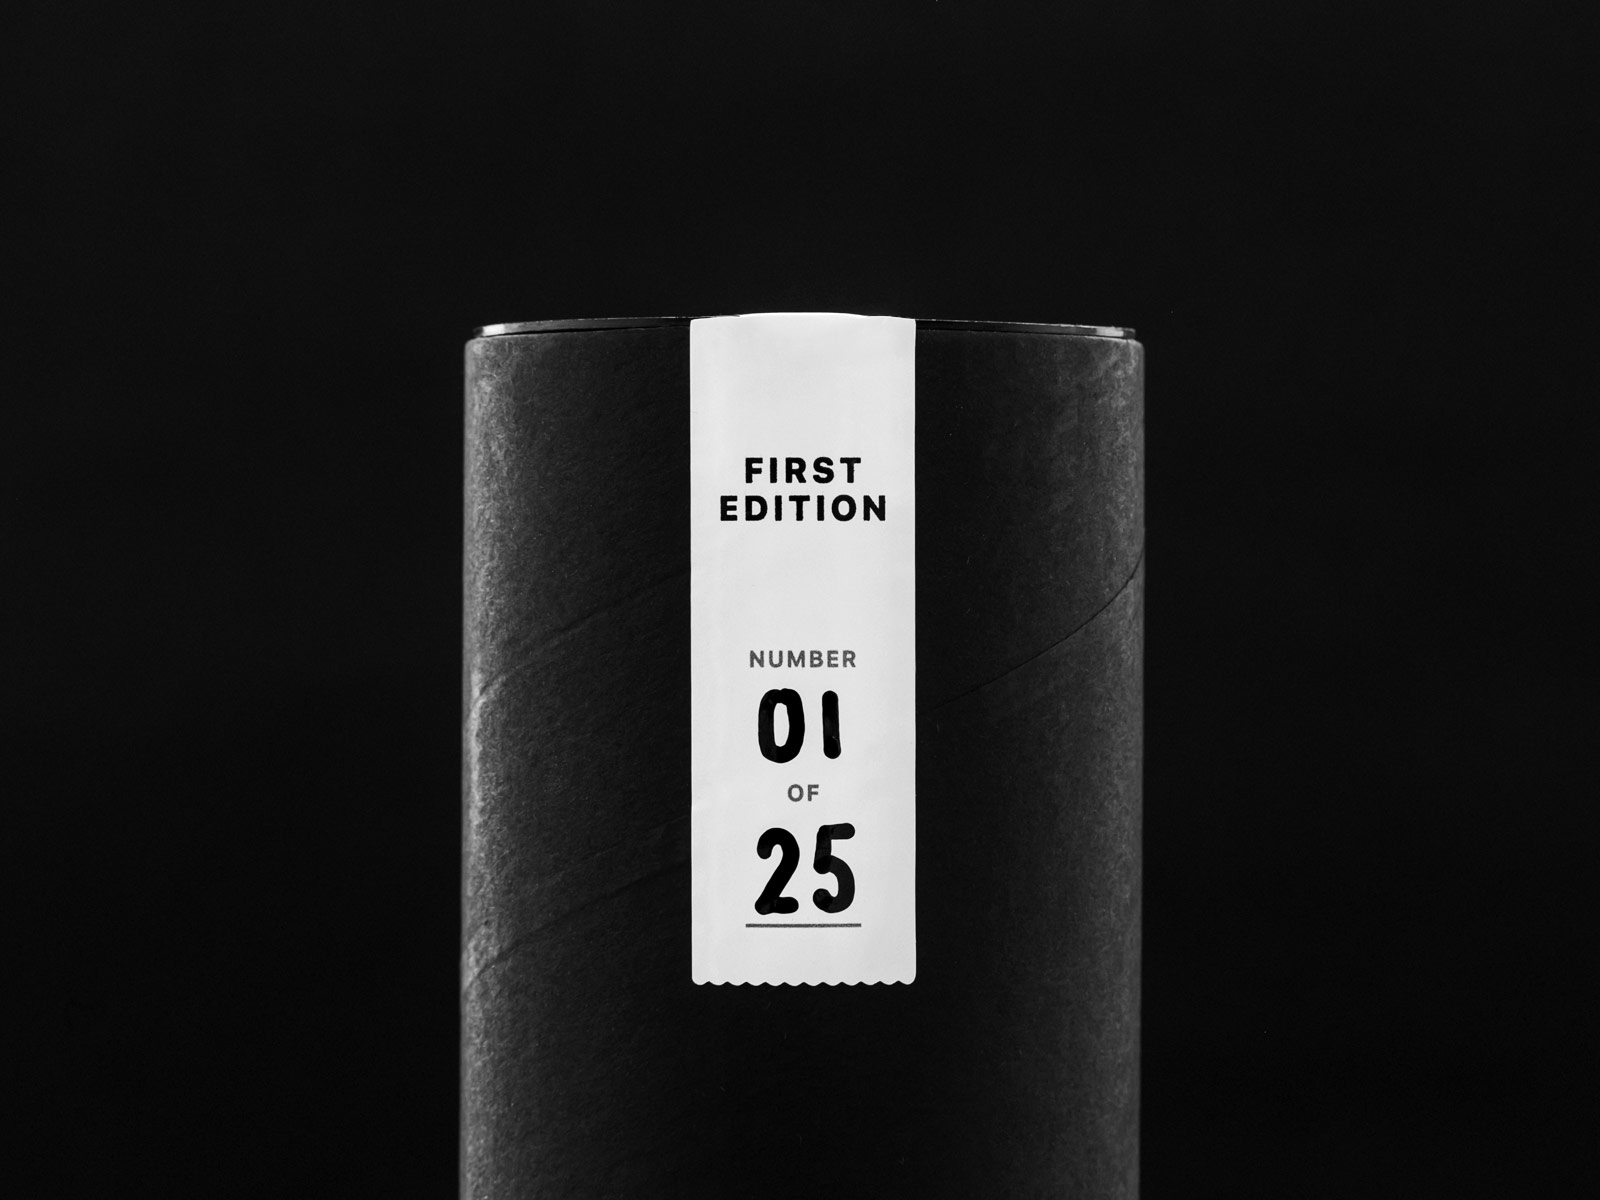 Close-up photo of the first edition seal on the black packaging tube